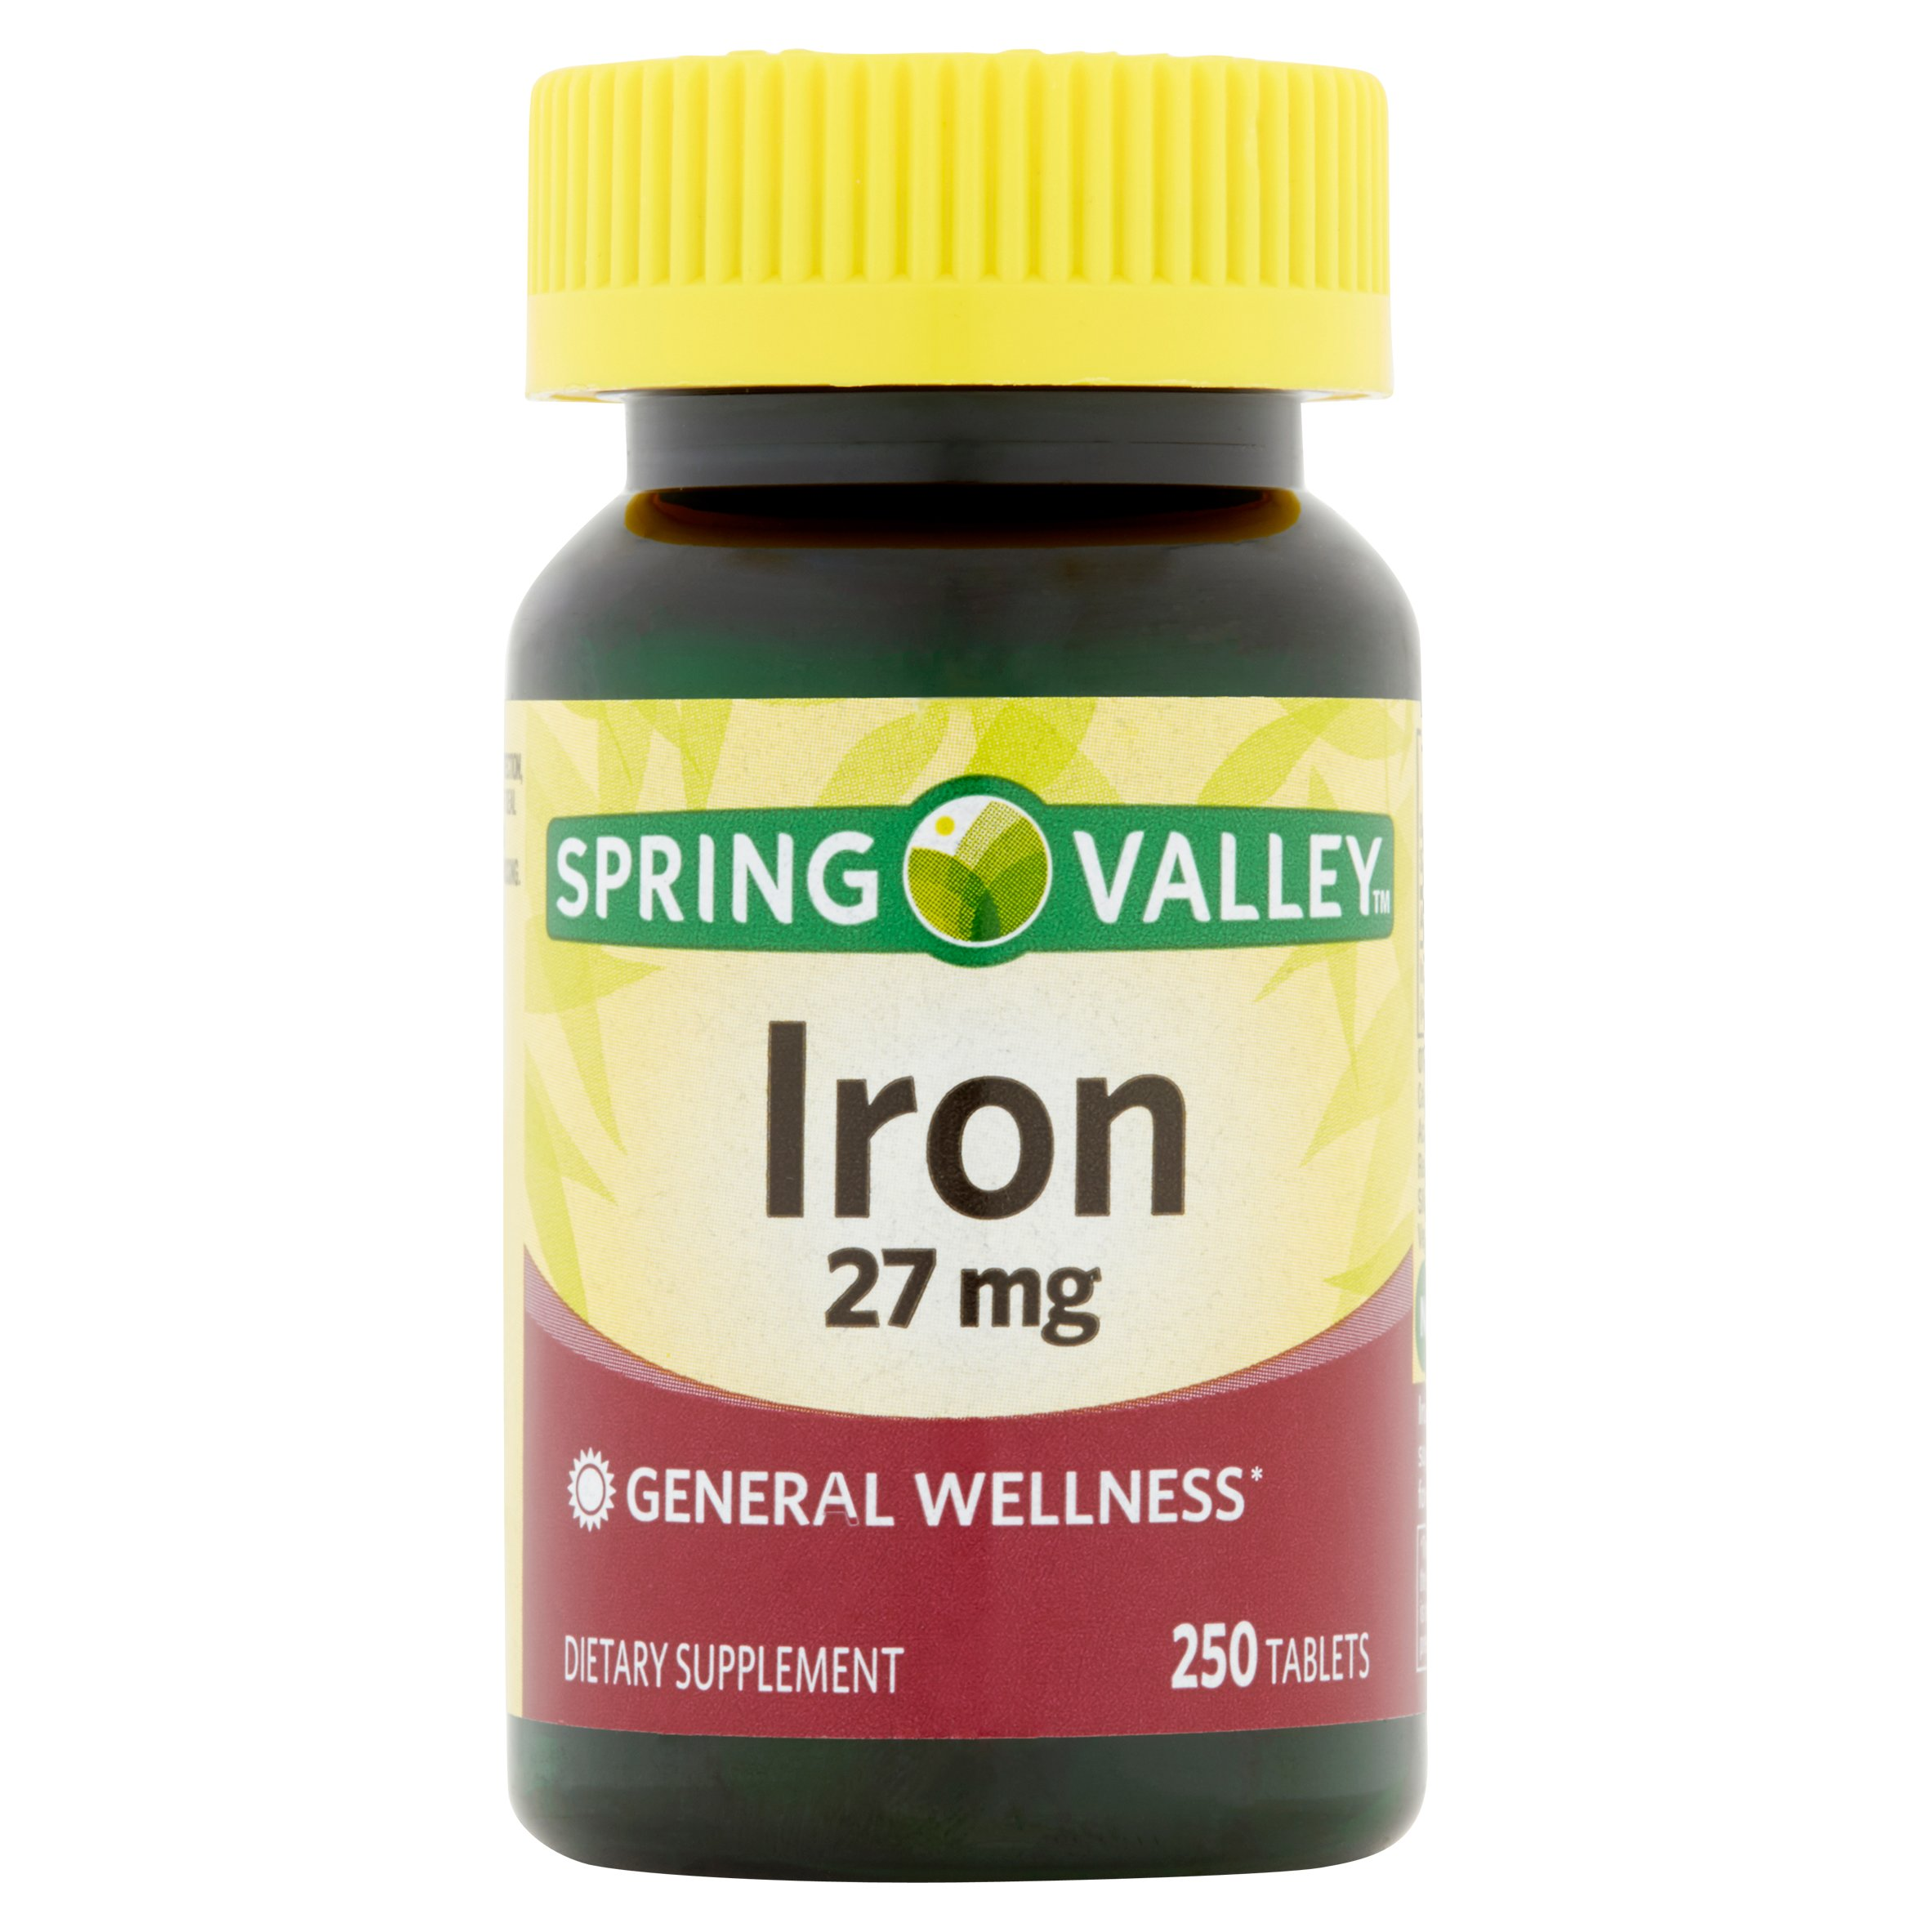 (2 Pack) Spring Valley Iron Supplement Tablets, 27 mg, 250 Ct